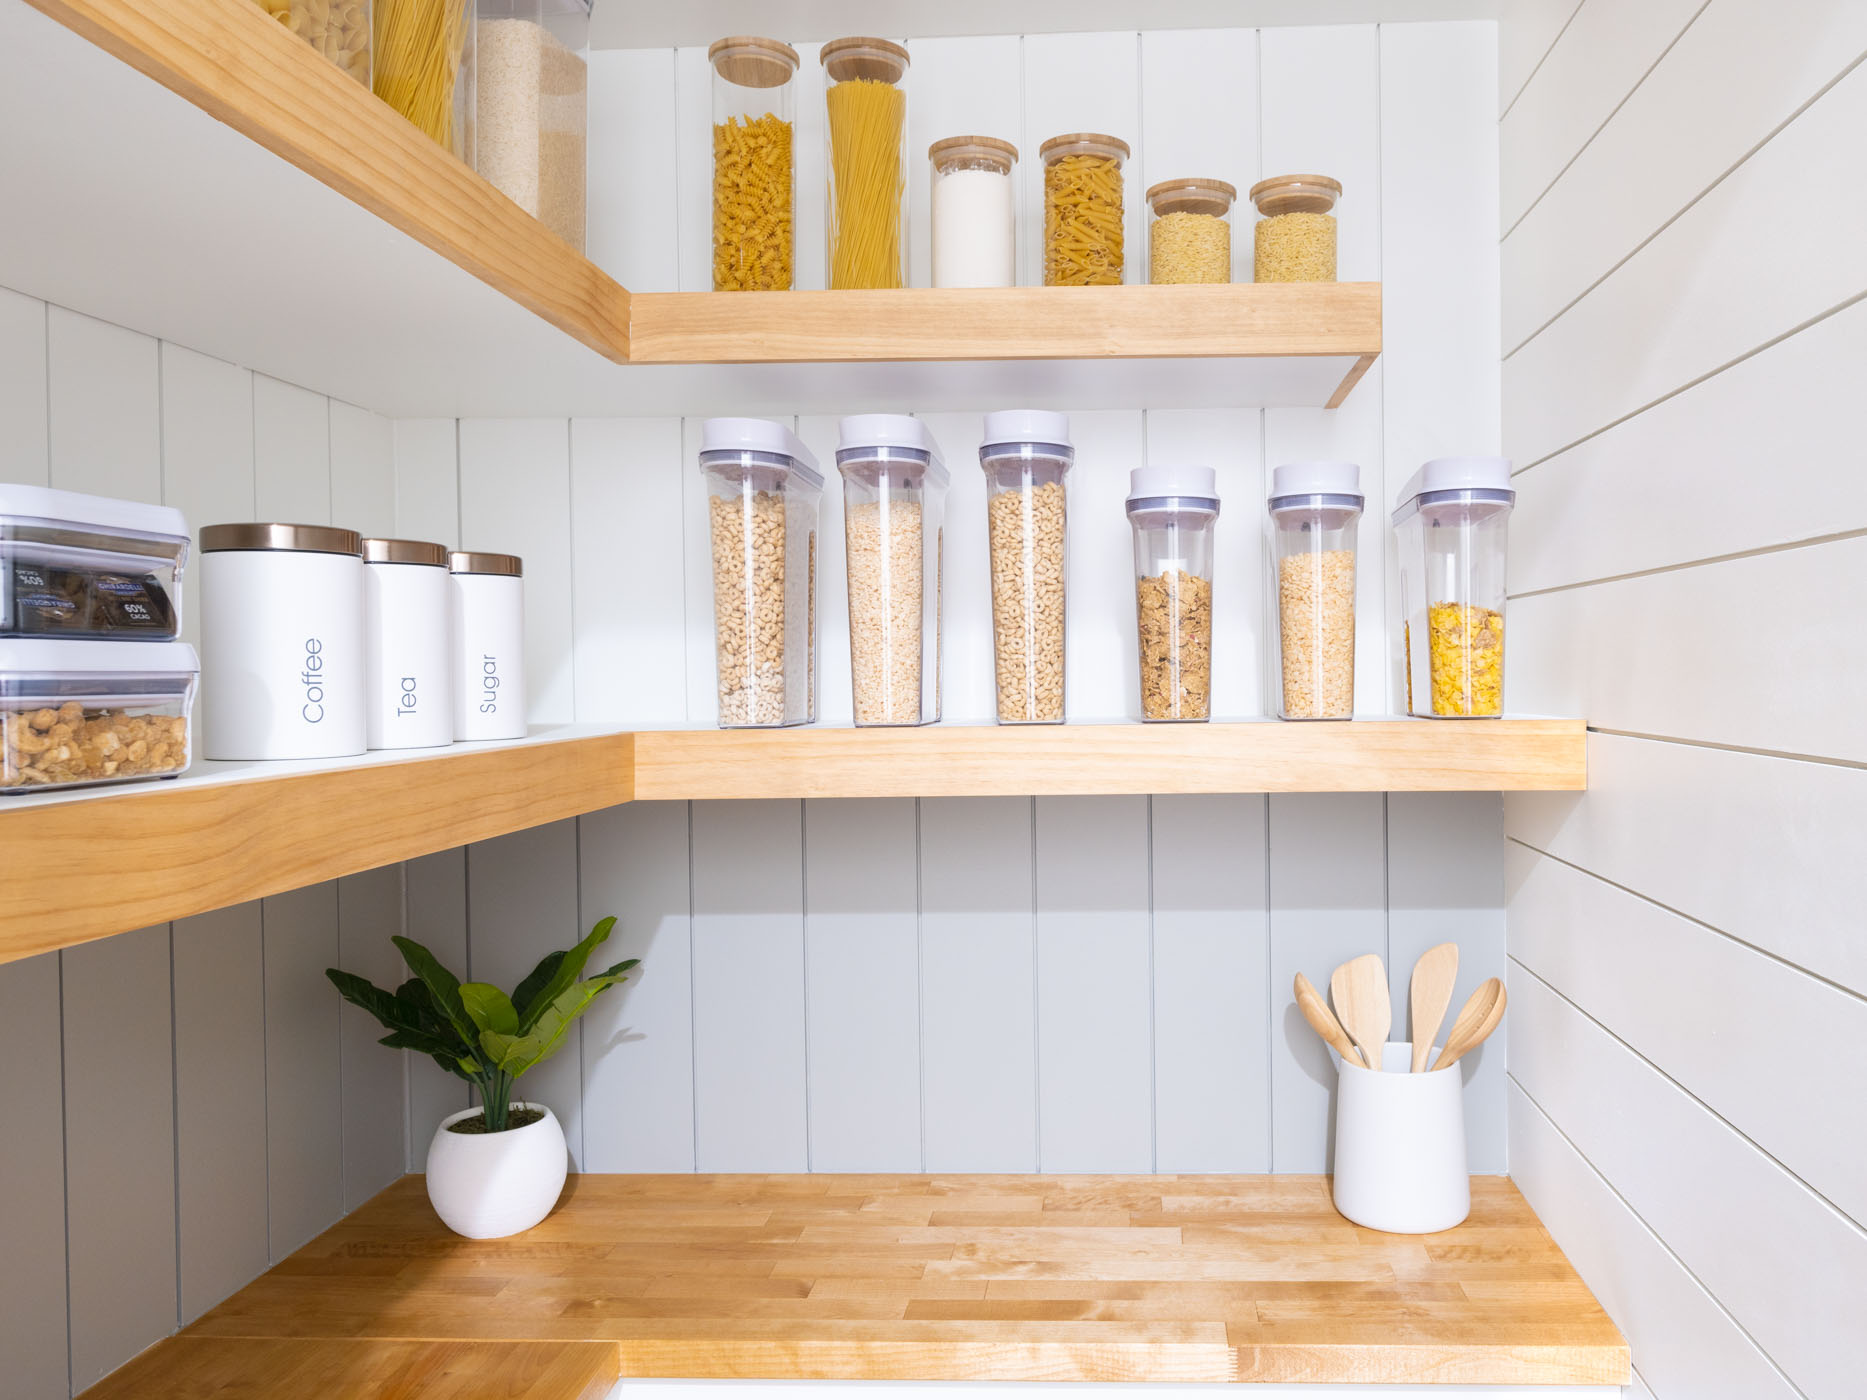 glass jars, plastic jars and metal canisters on white and brown shelves